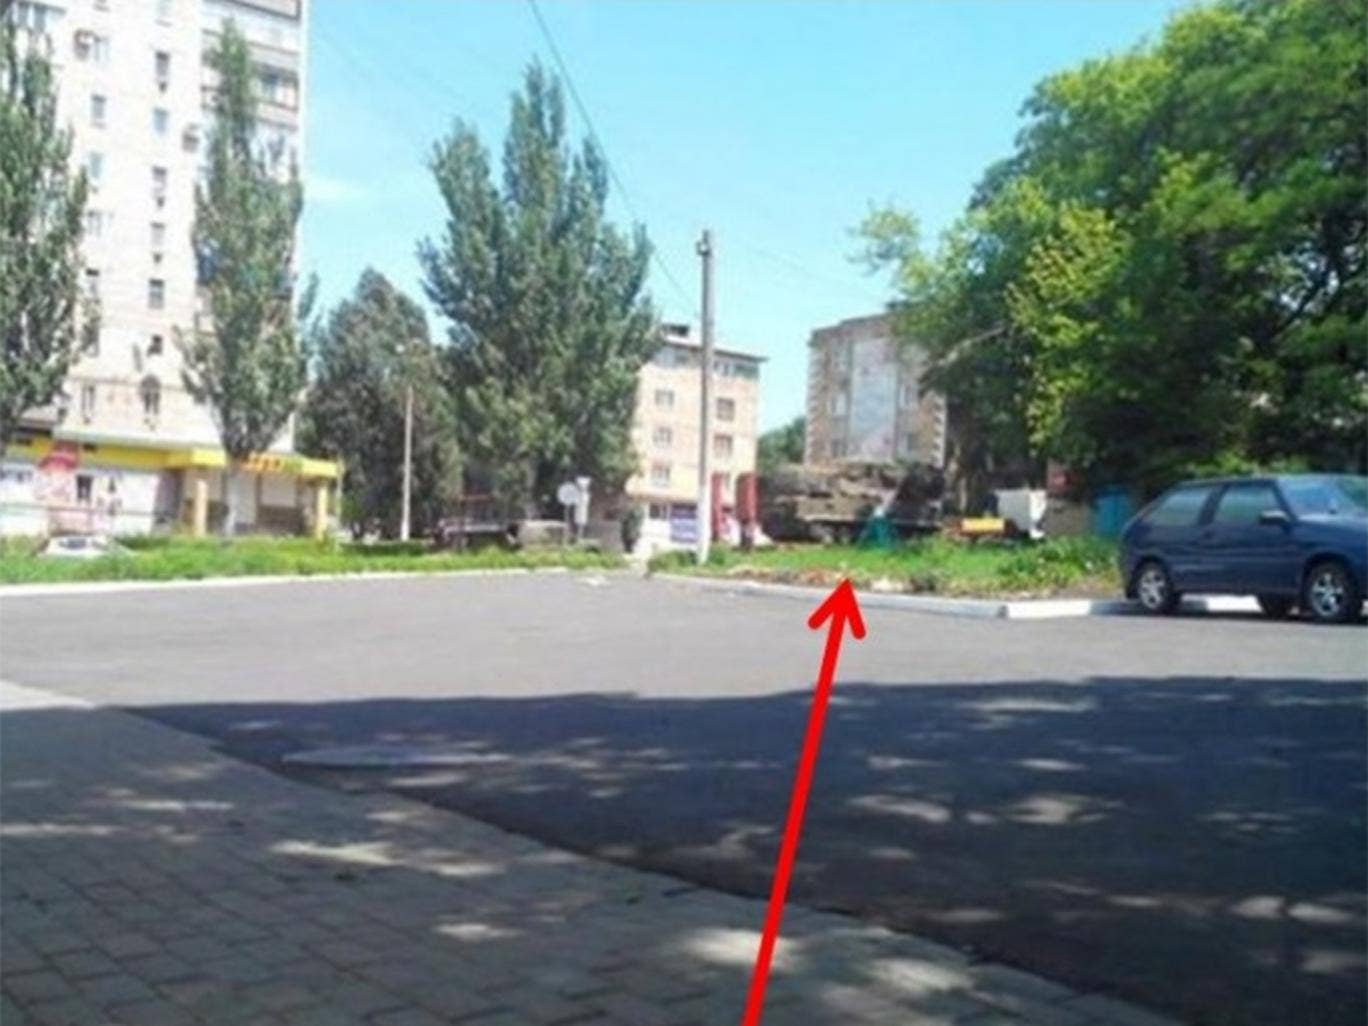 A photograph released by Ukraine's security services claiming to prove that Russian-made BUK-M1 surface-to-air missile systems were inside the rebel-held area near the crash site